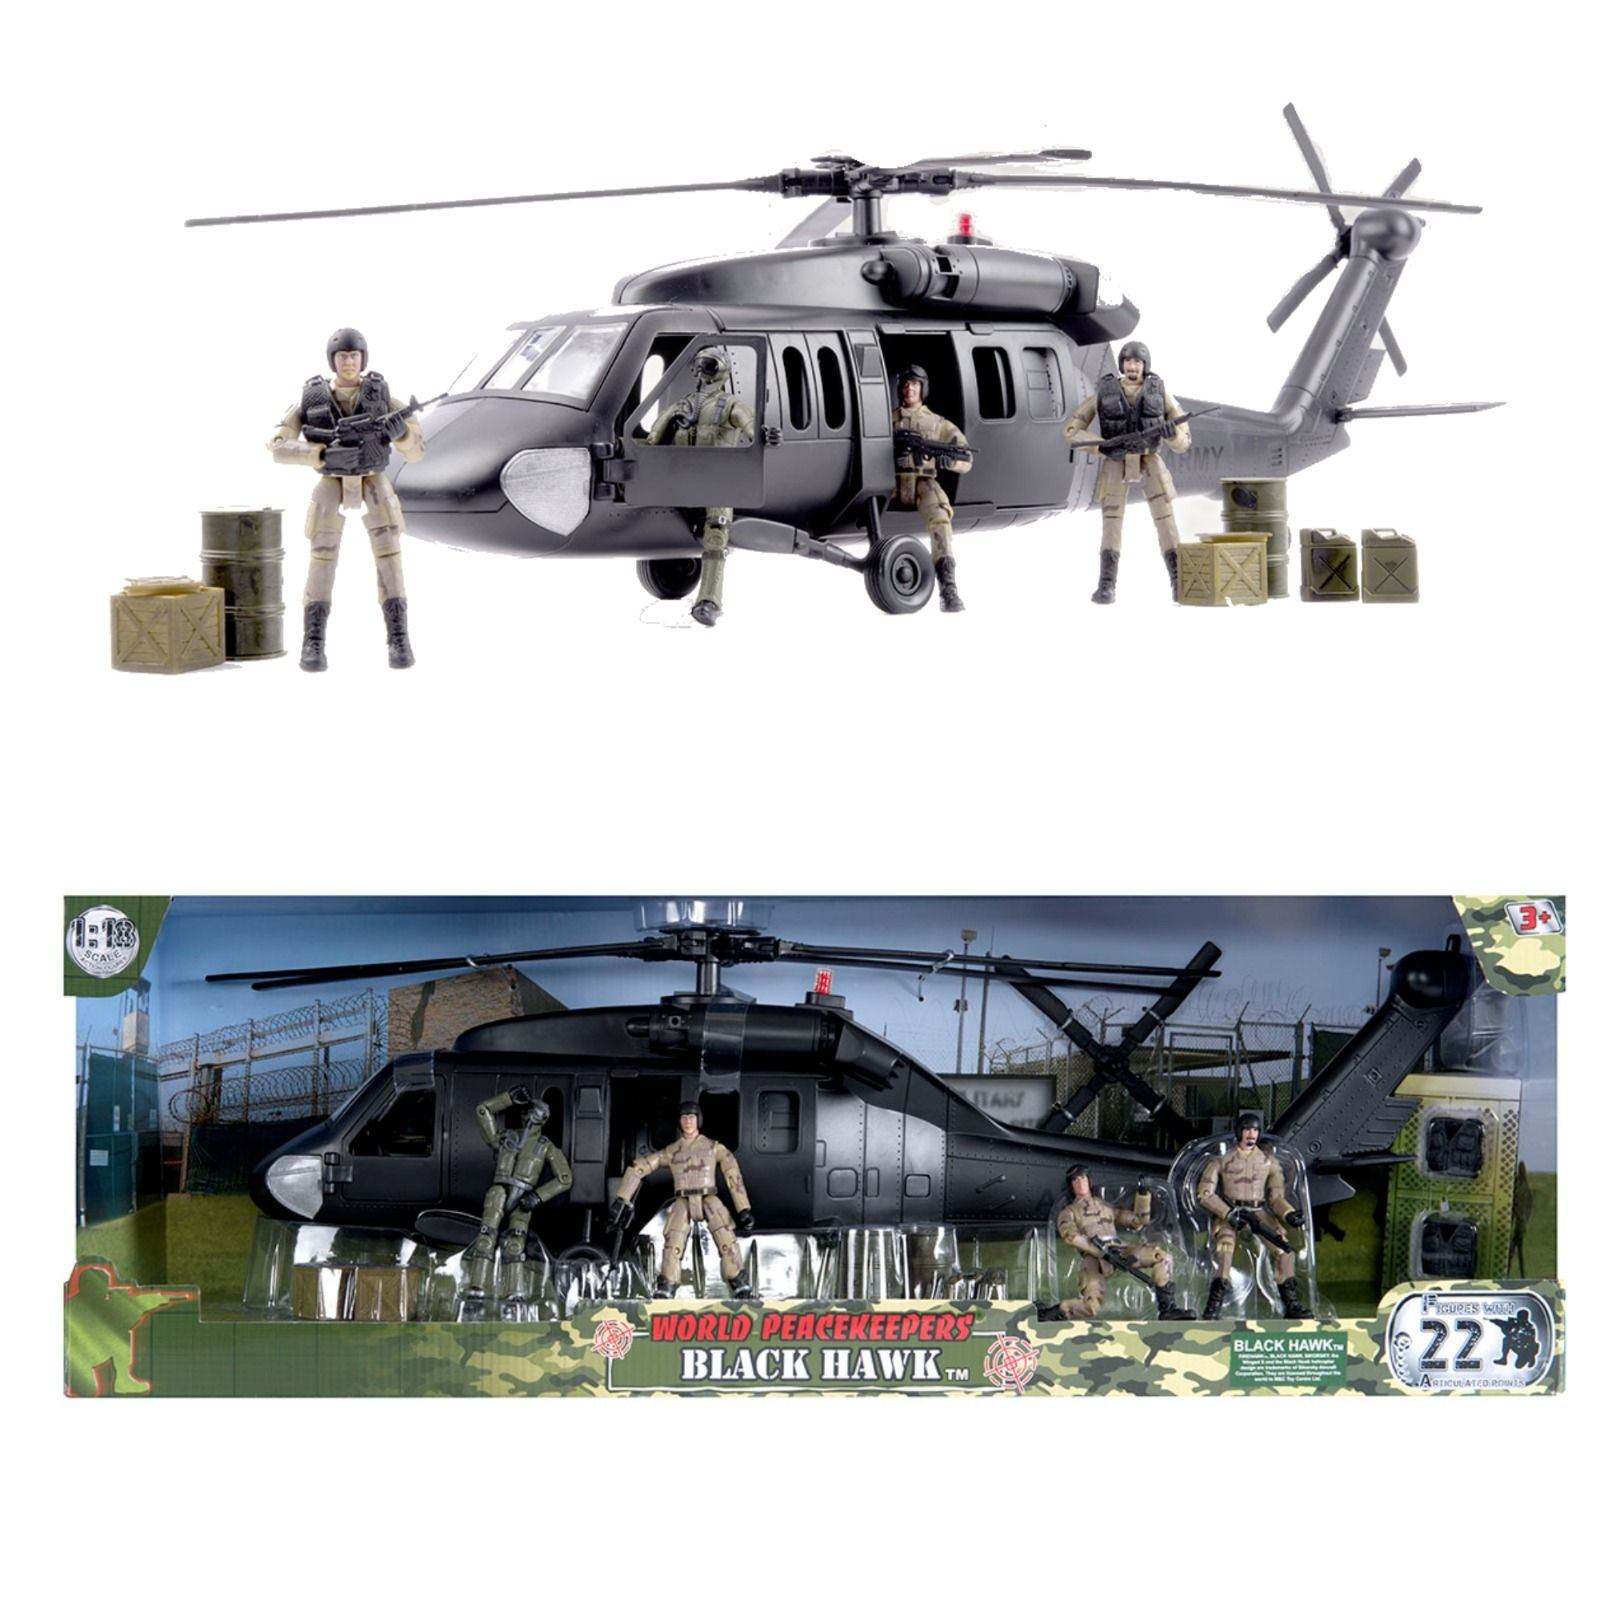 World Peacekeepers Black Hawk Army Military Helicopter Toy & 4 Figures